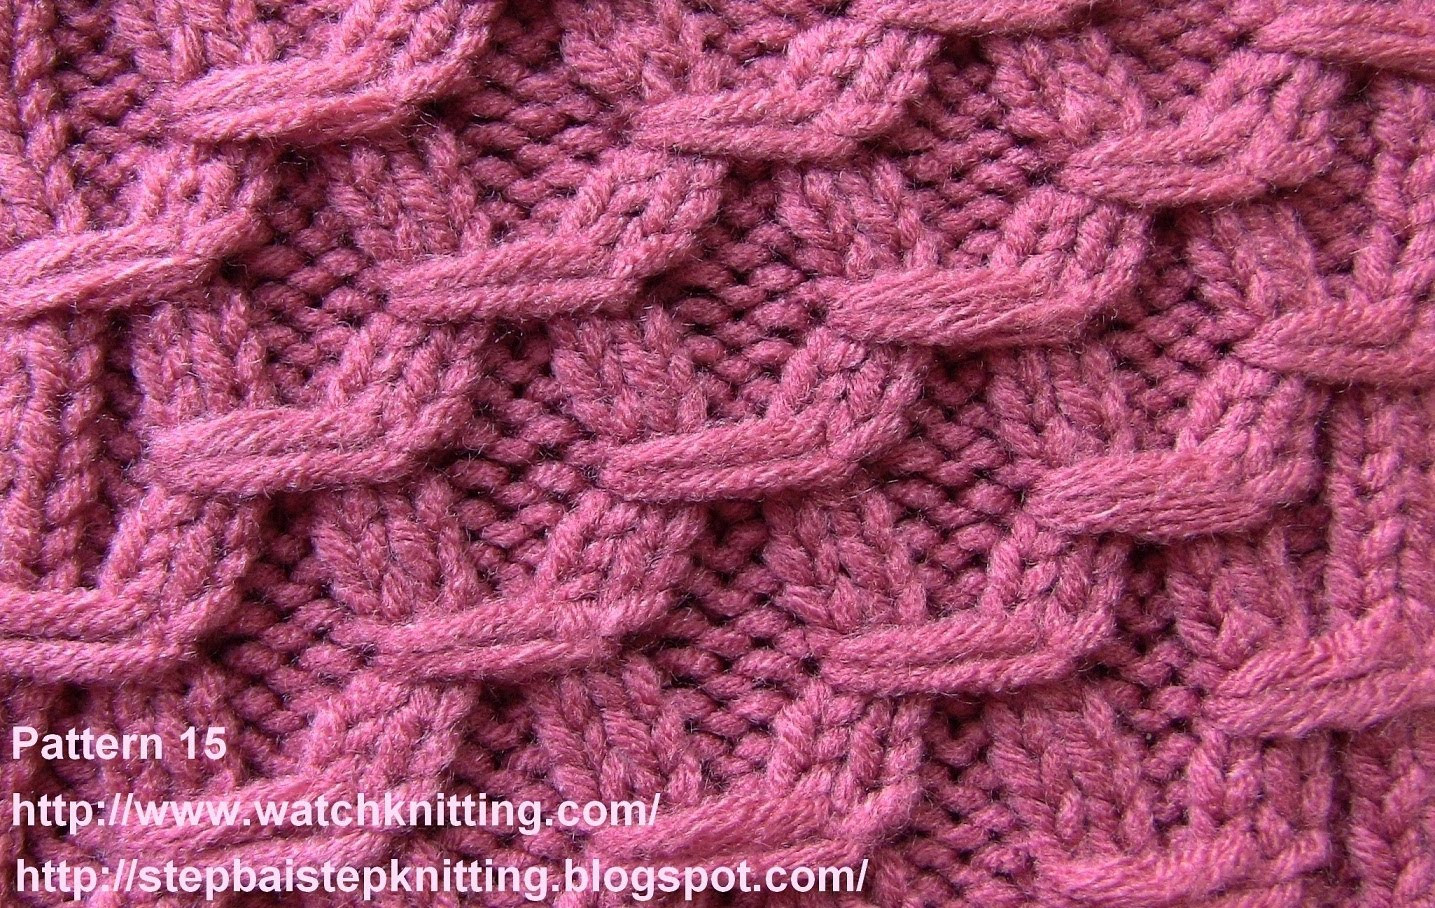 Best Of Knitting Wool Patterns Free Knitting and Crochet Patterns Of Marvelous 44 Ideas Free Knitting and Crochet Patterns